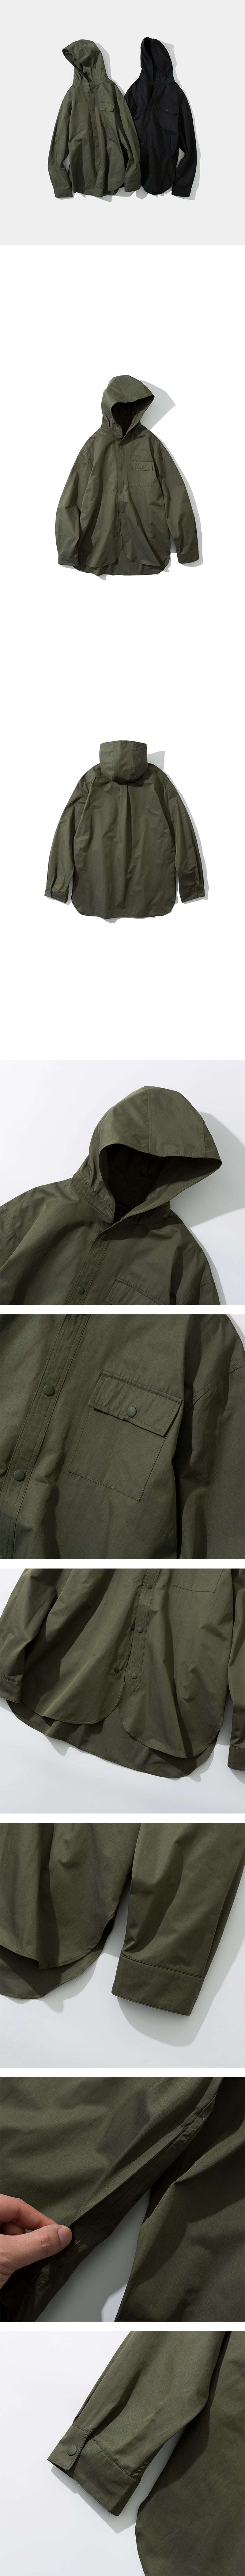 Hooded Shirt - Khaki